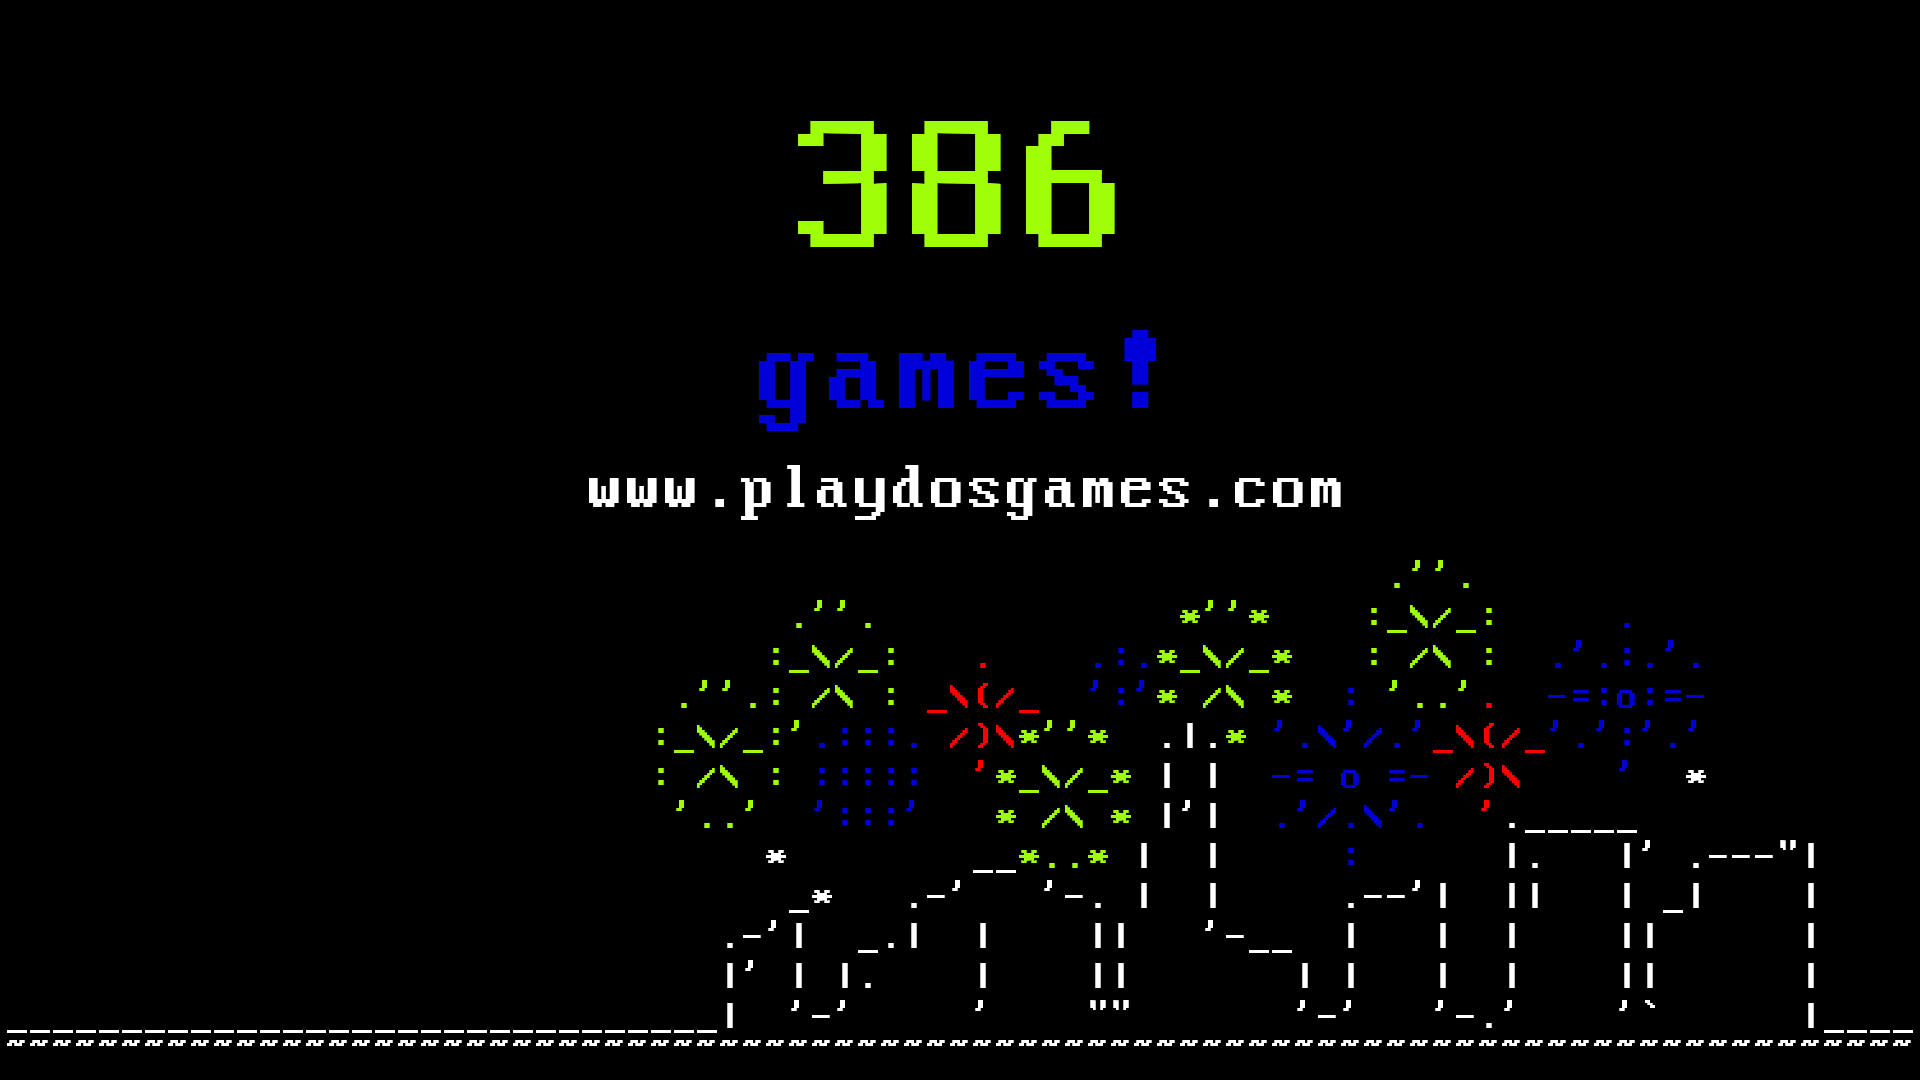 386 games at www.playdosgames.com